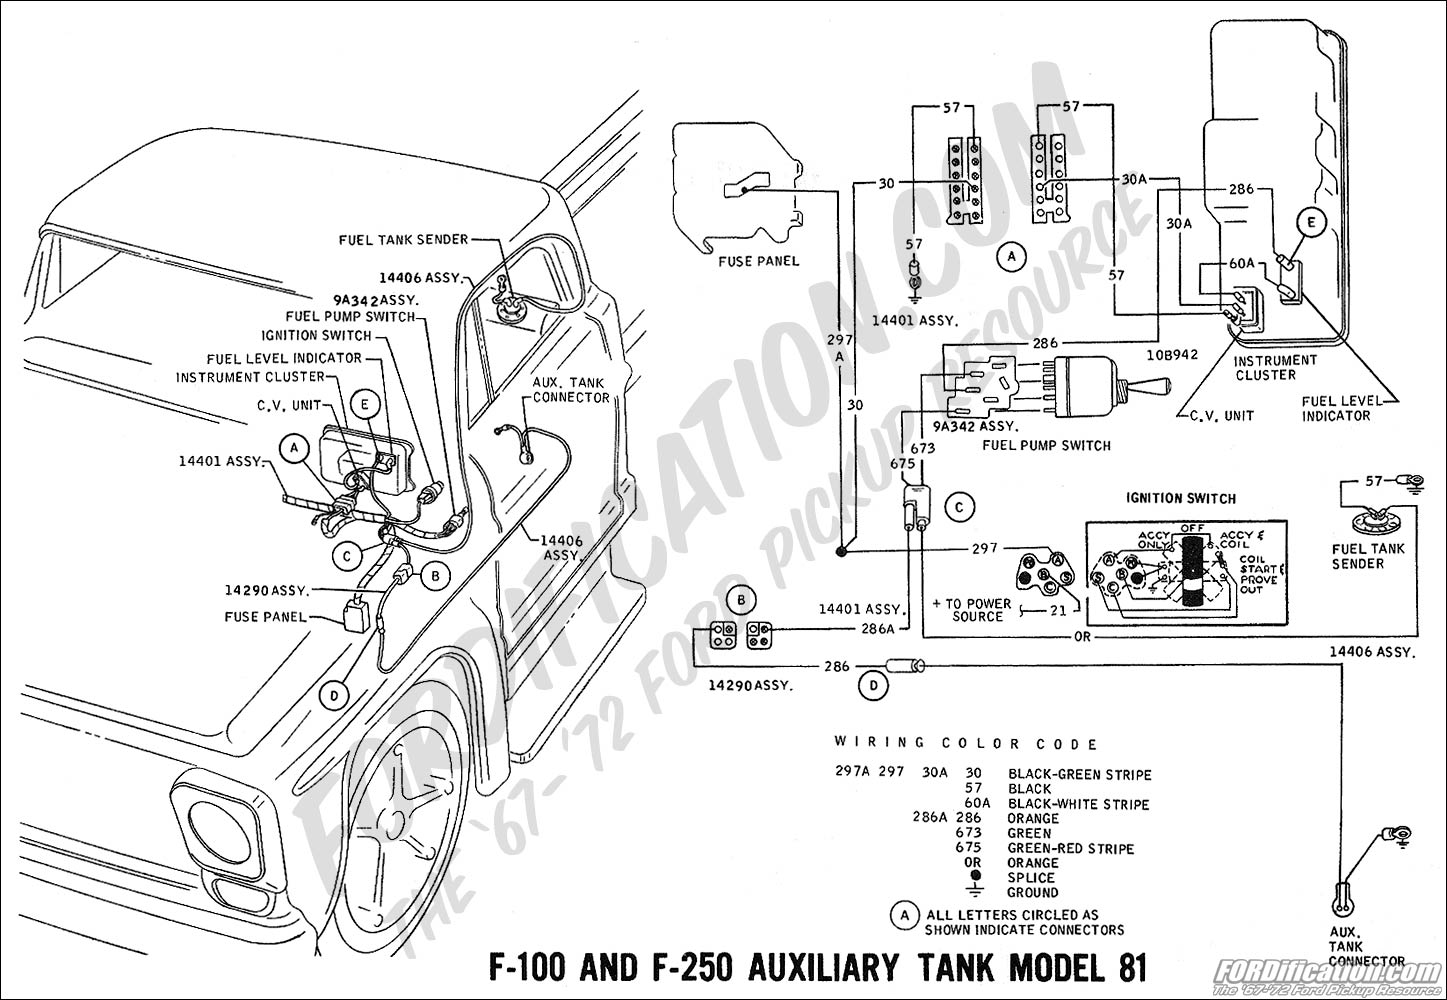 wiring diagram for 1973 ford f 100 with Schematics H on Photo 13 additionally 1287375 79 Bronco Heater Blower Wiring Question likewise Firing order further 1979 Ford Short Bed Wiring Diagrams also 0znoo Alternator Ford Falcon Want.